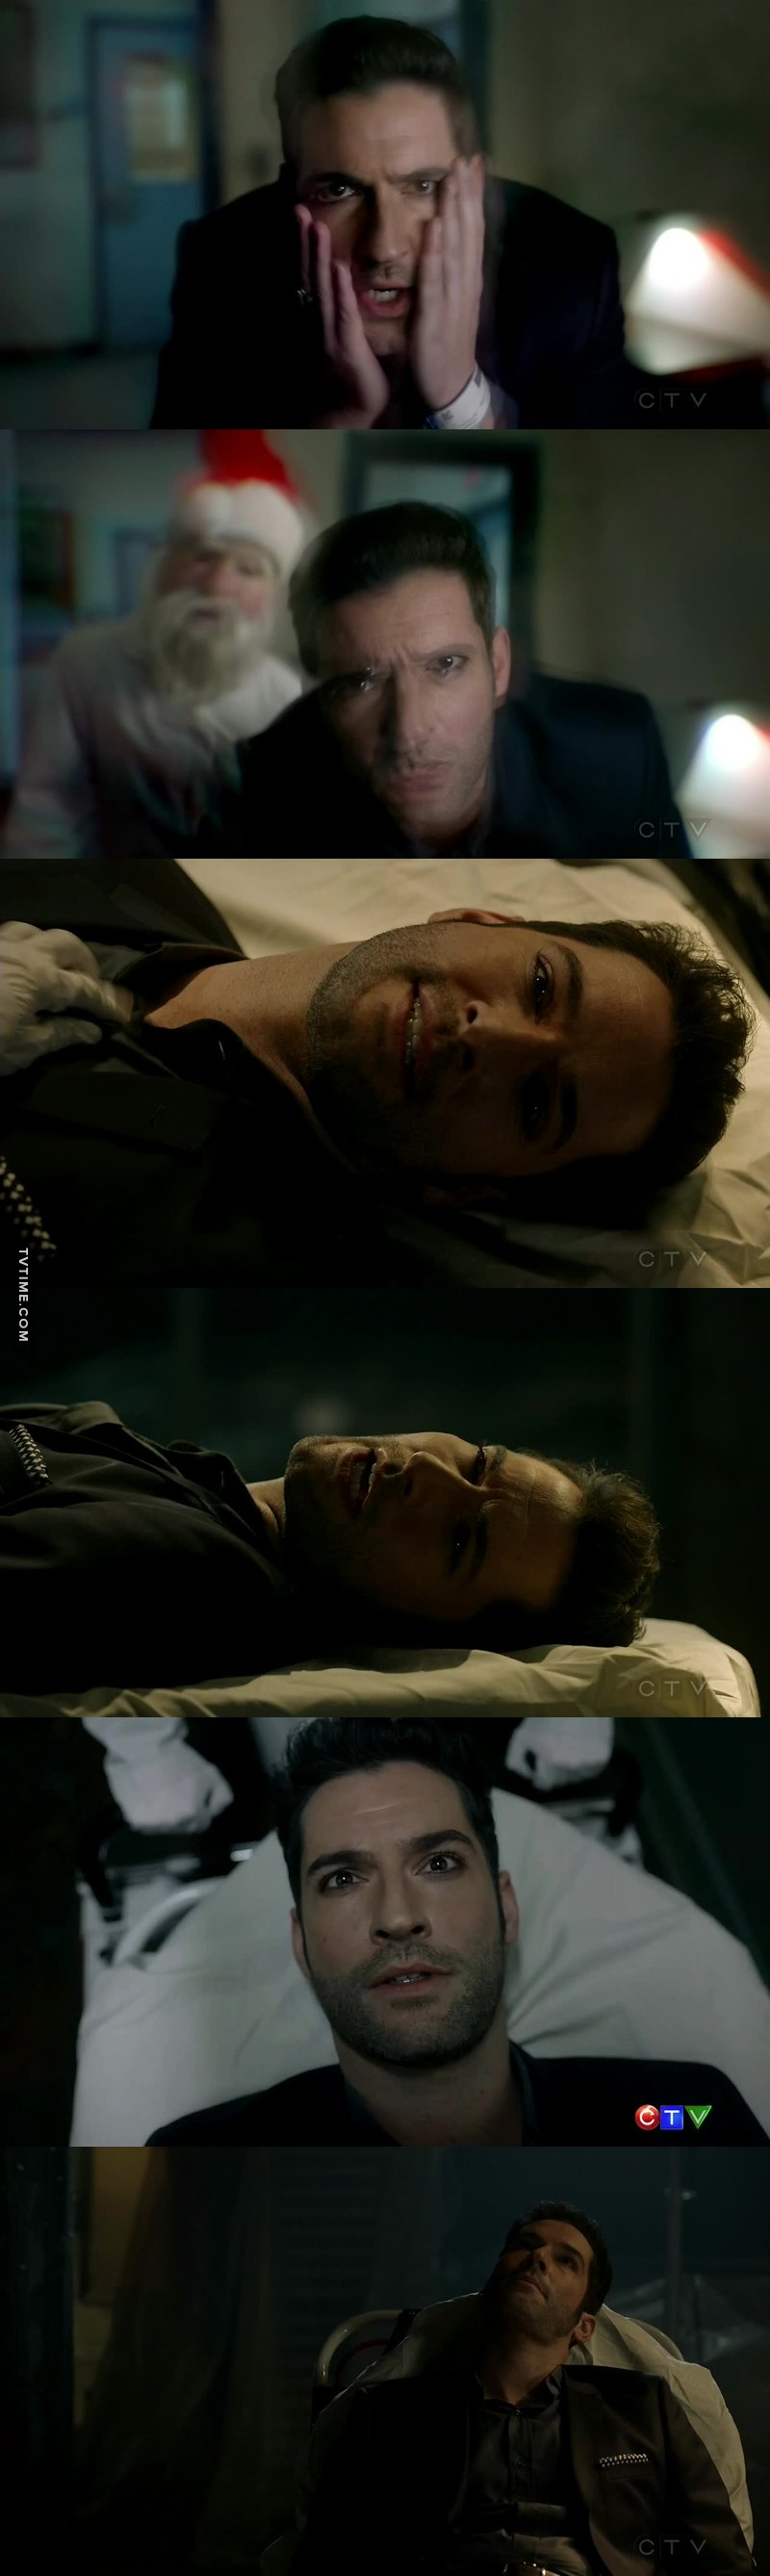 Drugged Lucifer was so funny!